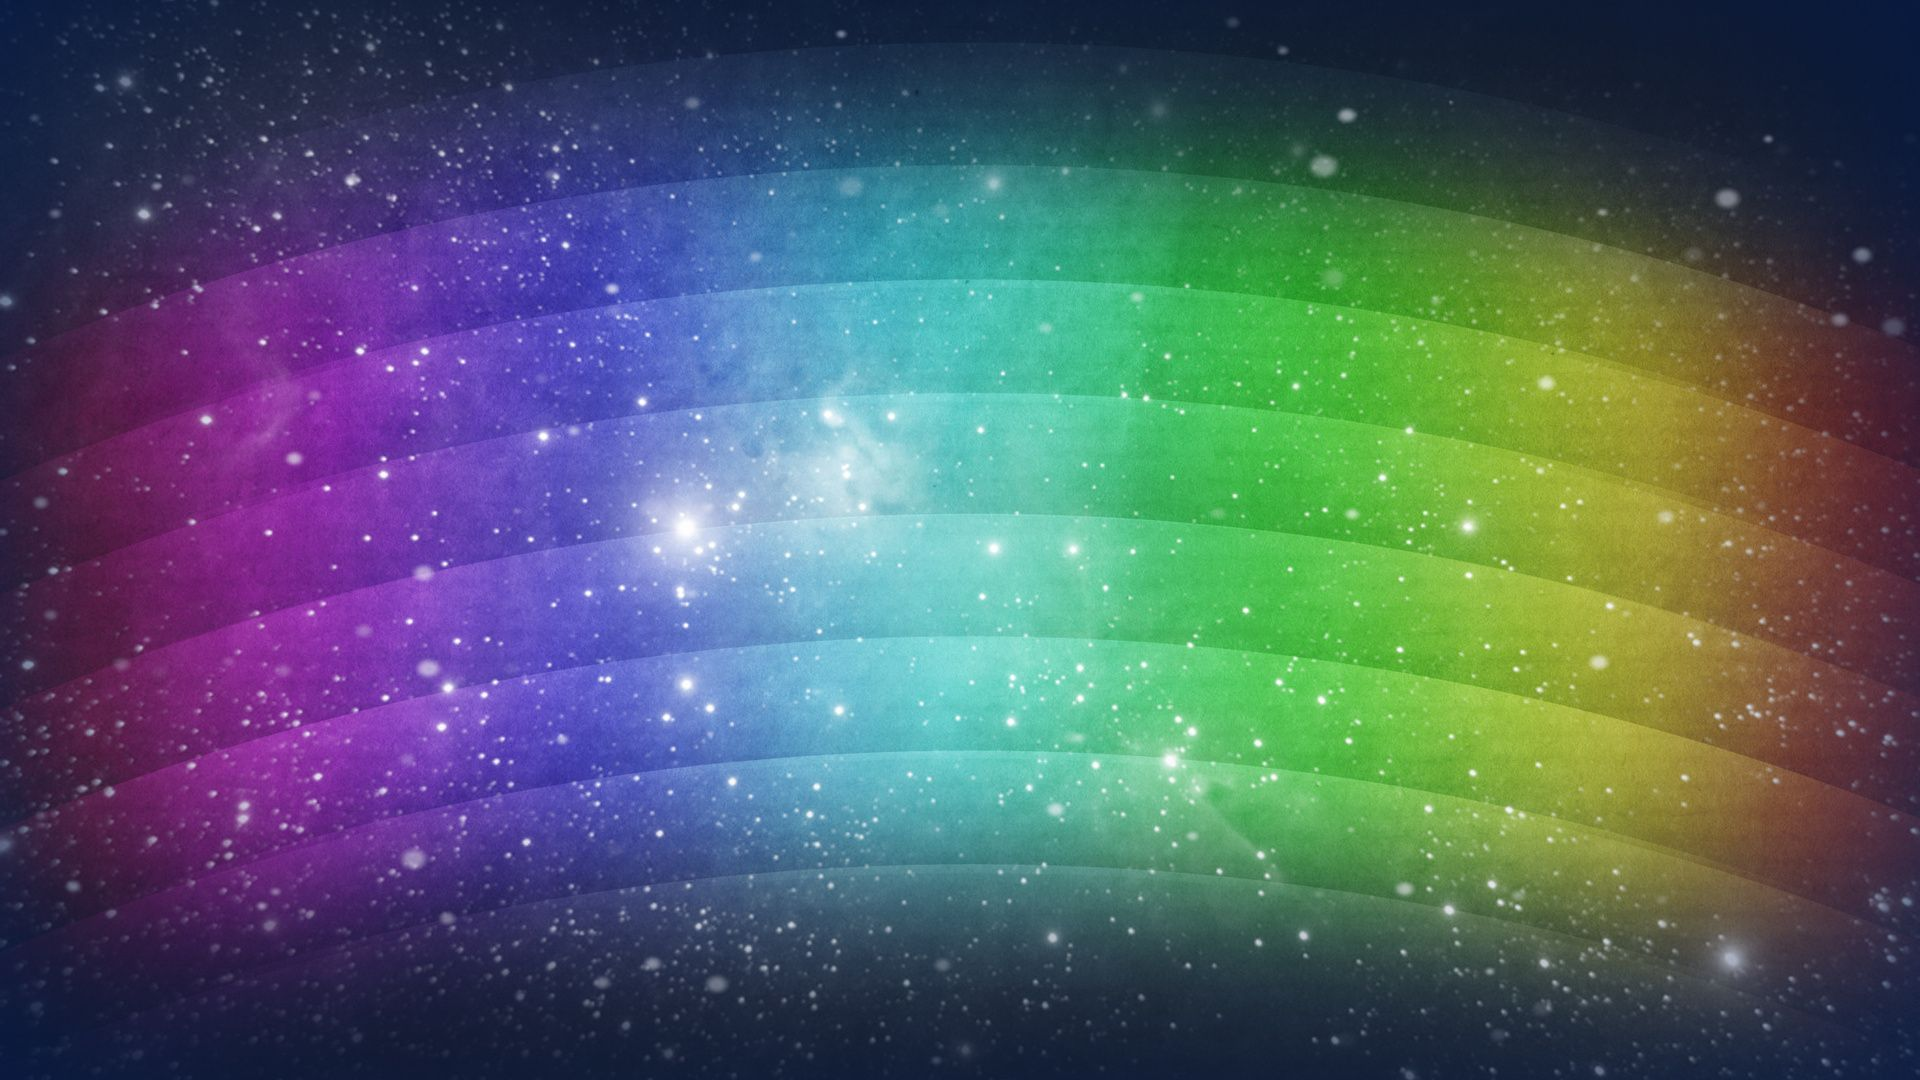 rainbow abstract colorful hd rainbow abstract colorful hd desktop backgroundsphotos in hd widescreen high quality resolutions for free